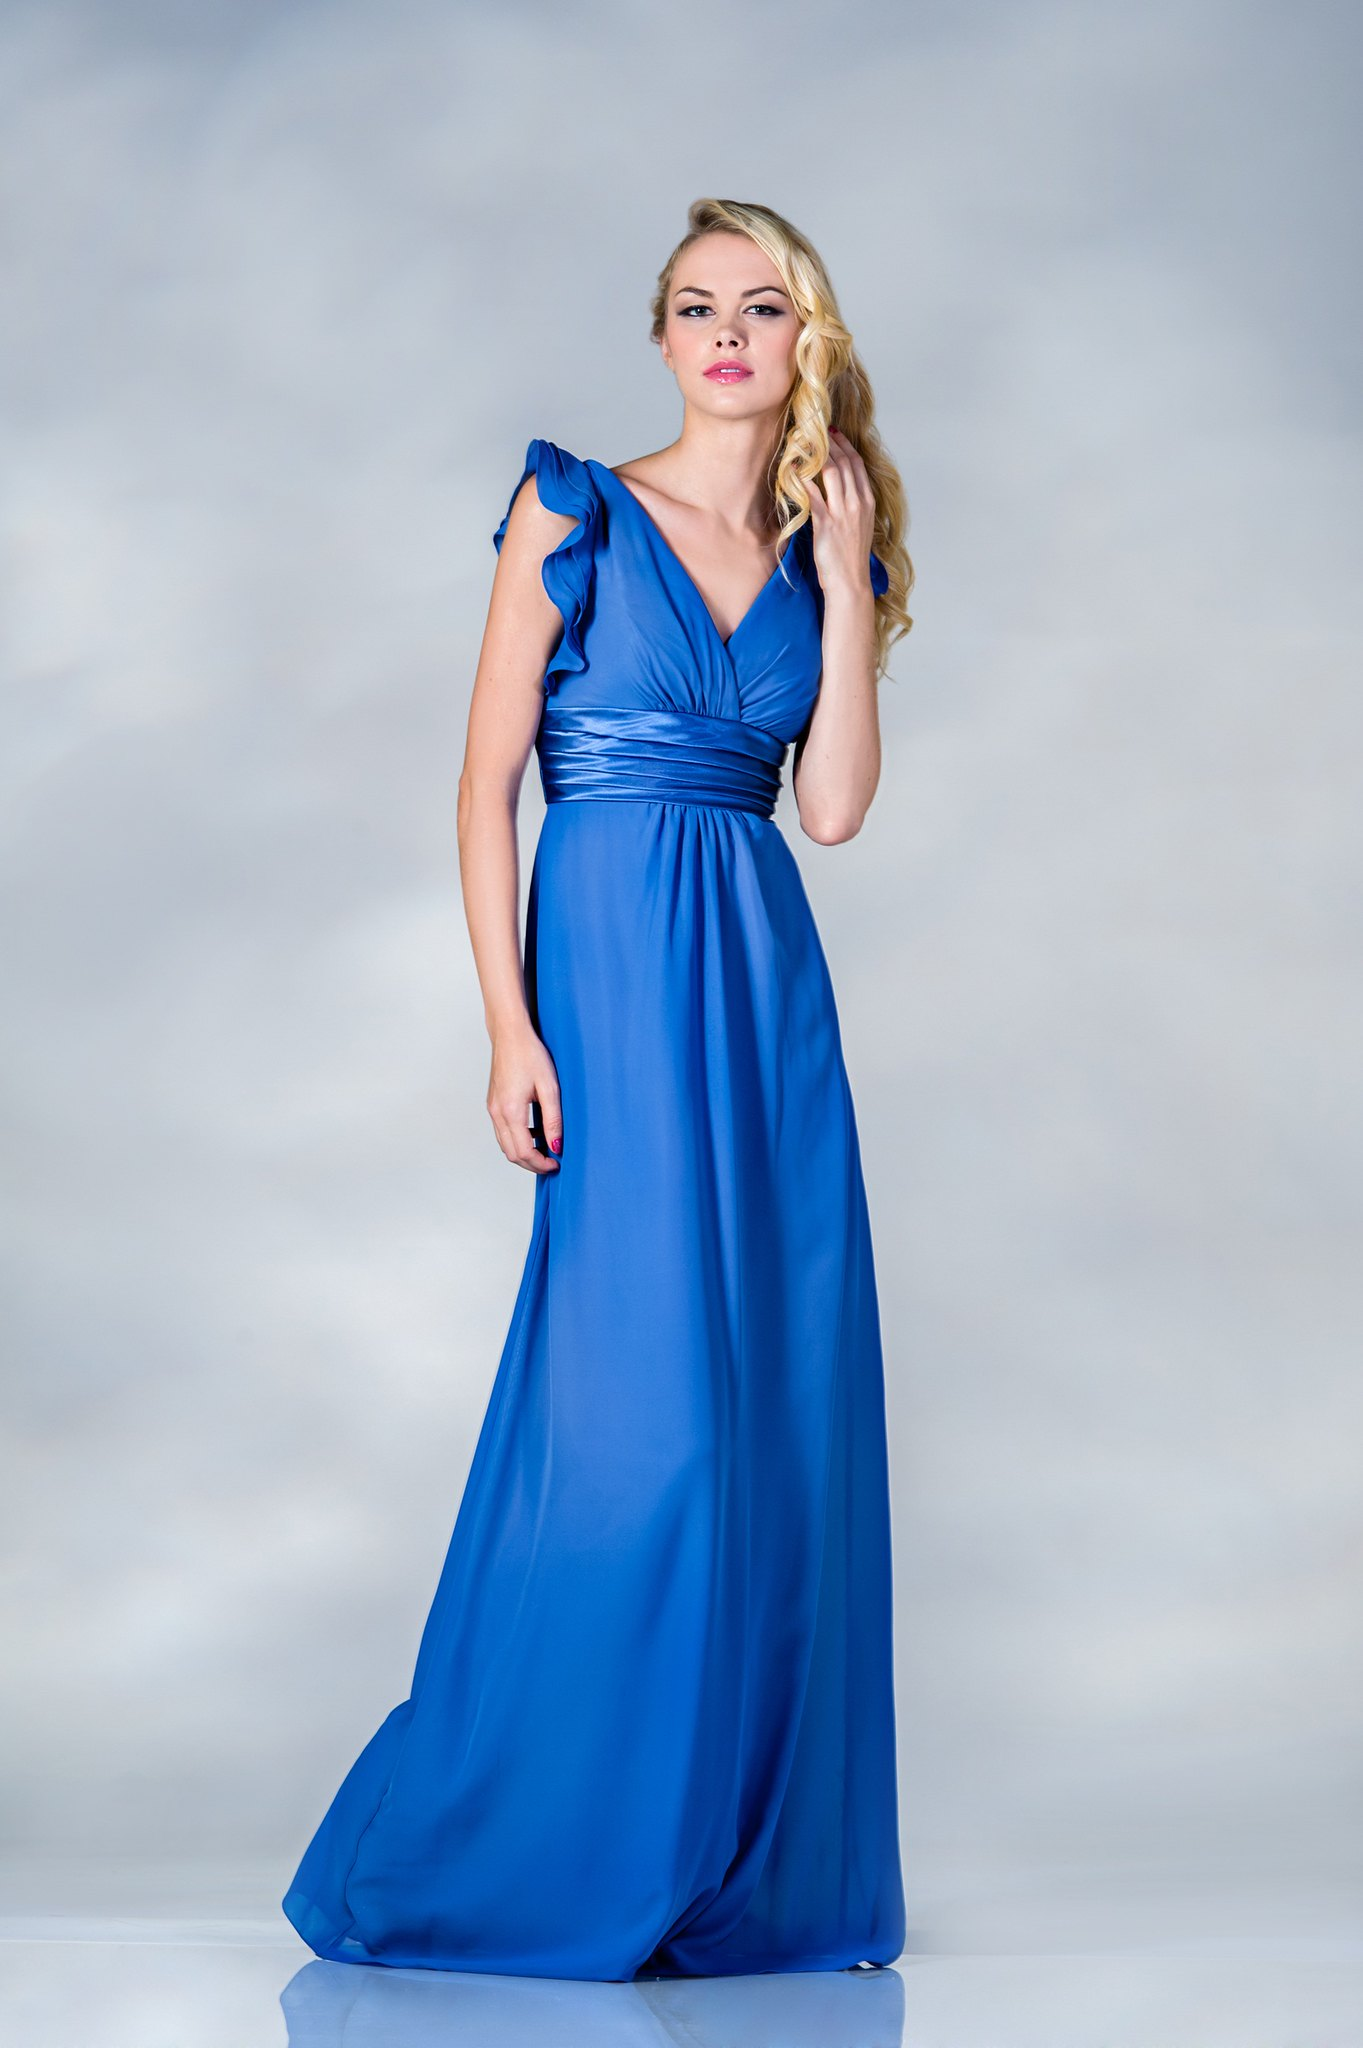 Luxury Party Dresses Clearance Composition - All Wedding Dresses ...